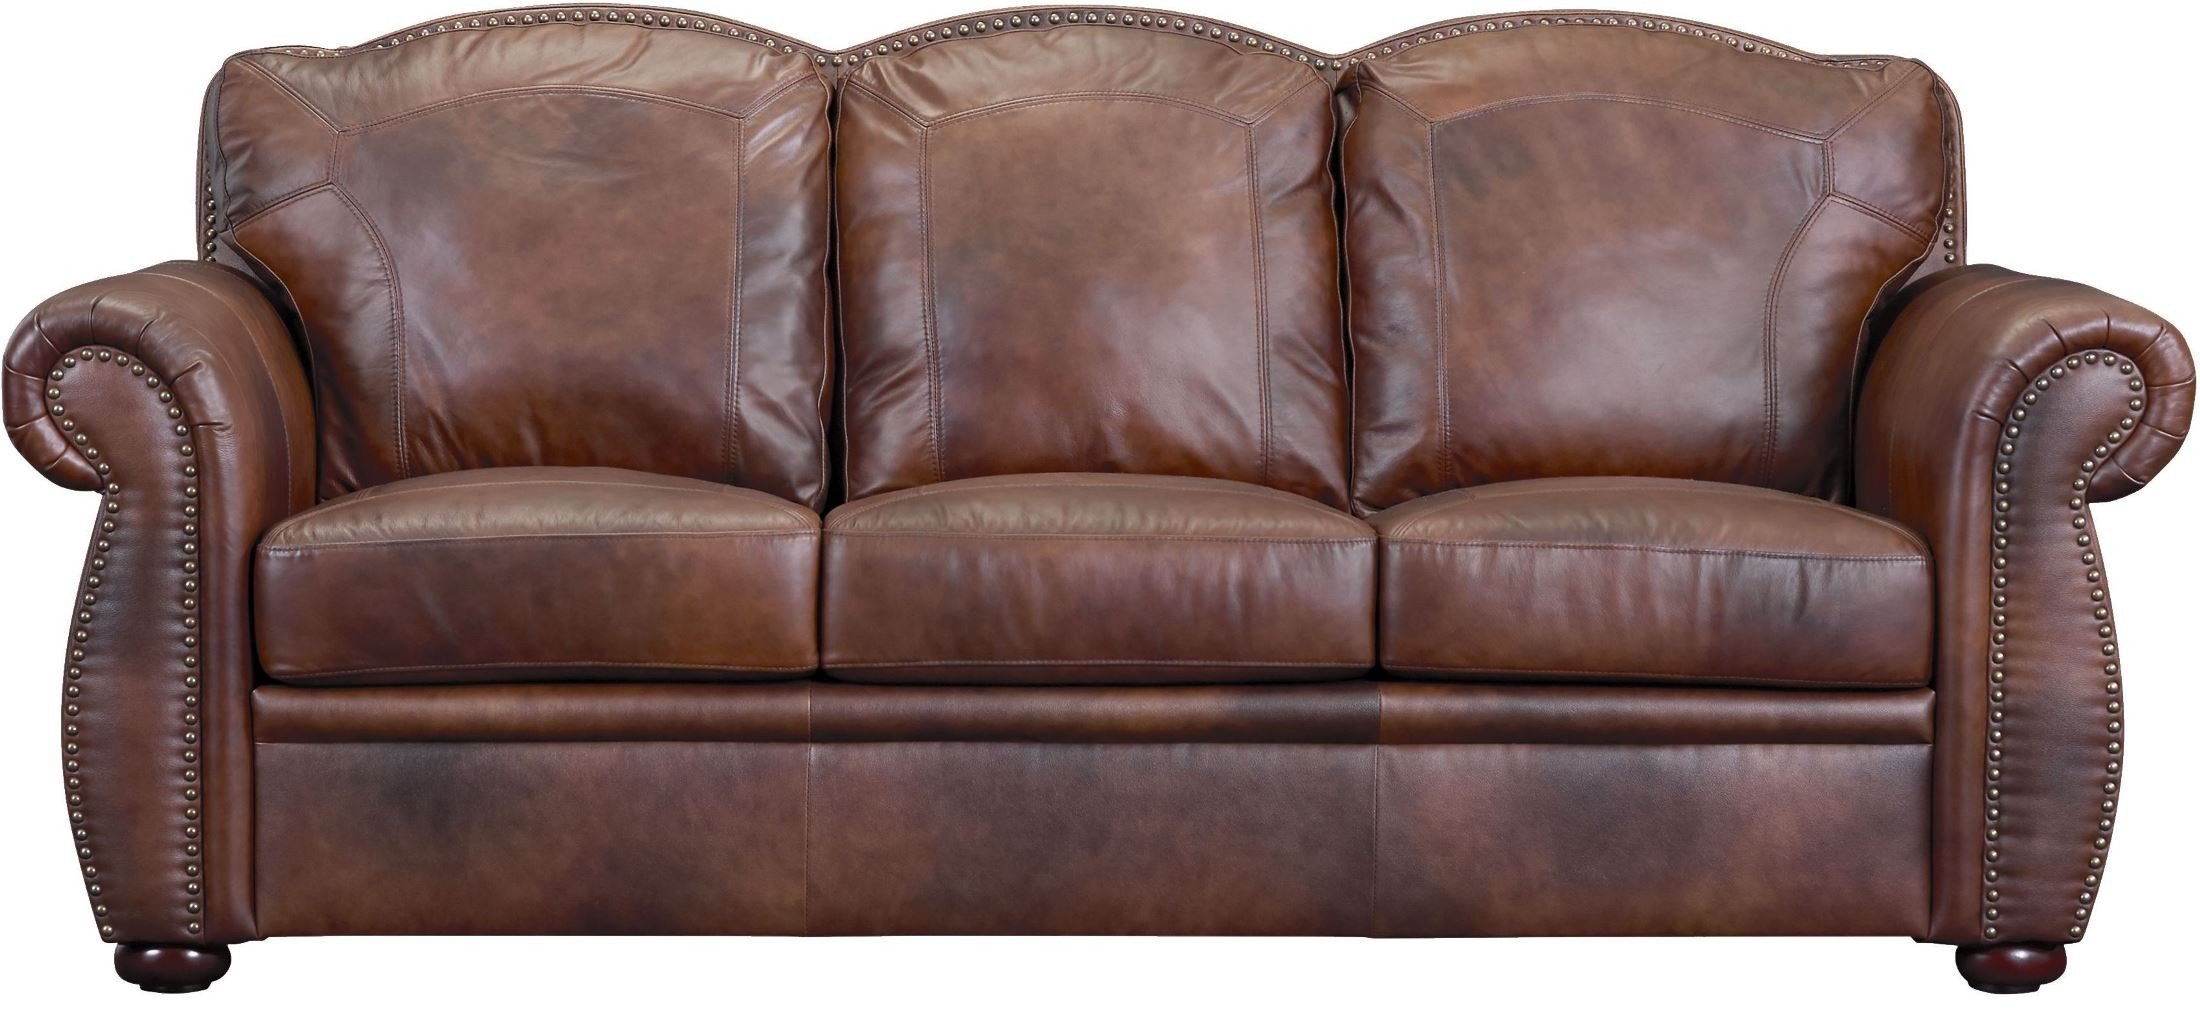 Arizona Marco Sofa from Leather Italia 1444 6110